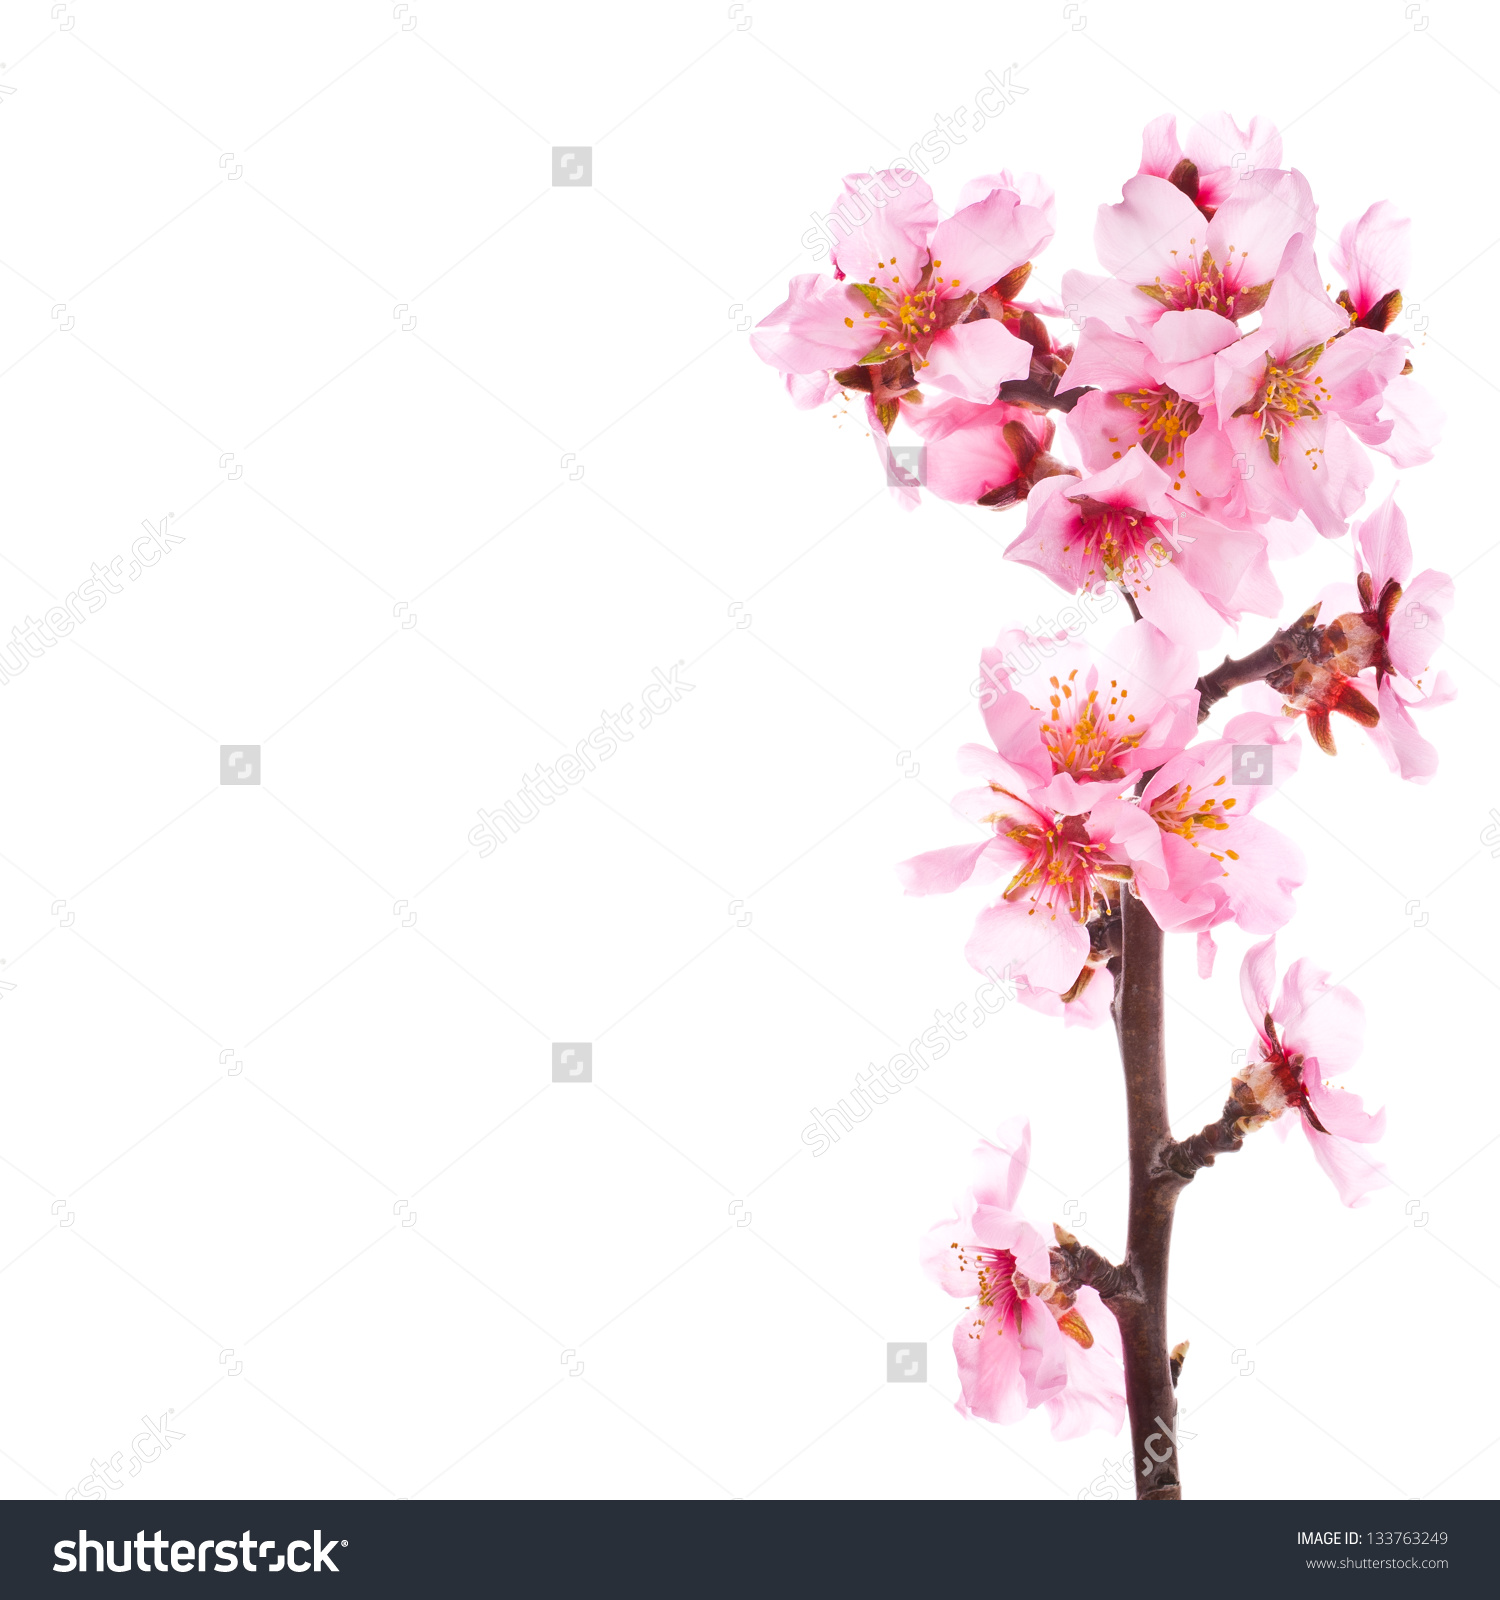 Stock Photo Almond Tree Pink Flowers Close Up With Branch Isolated